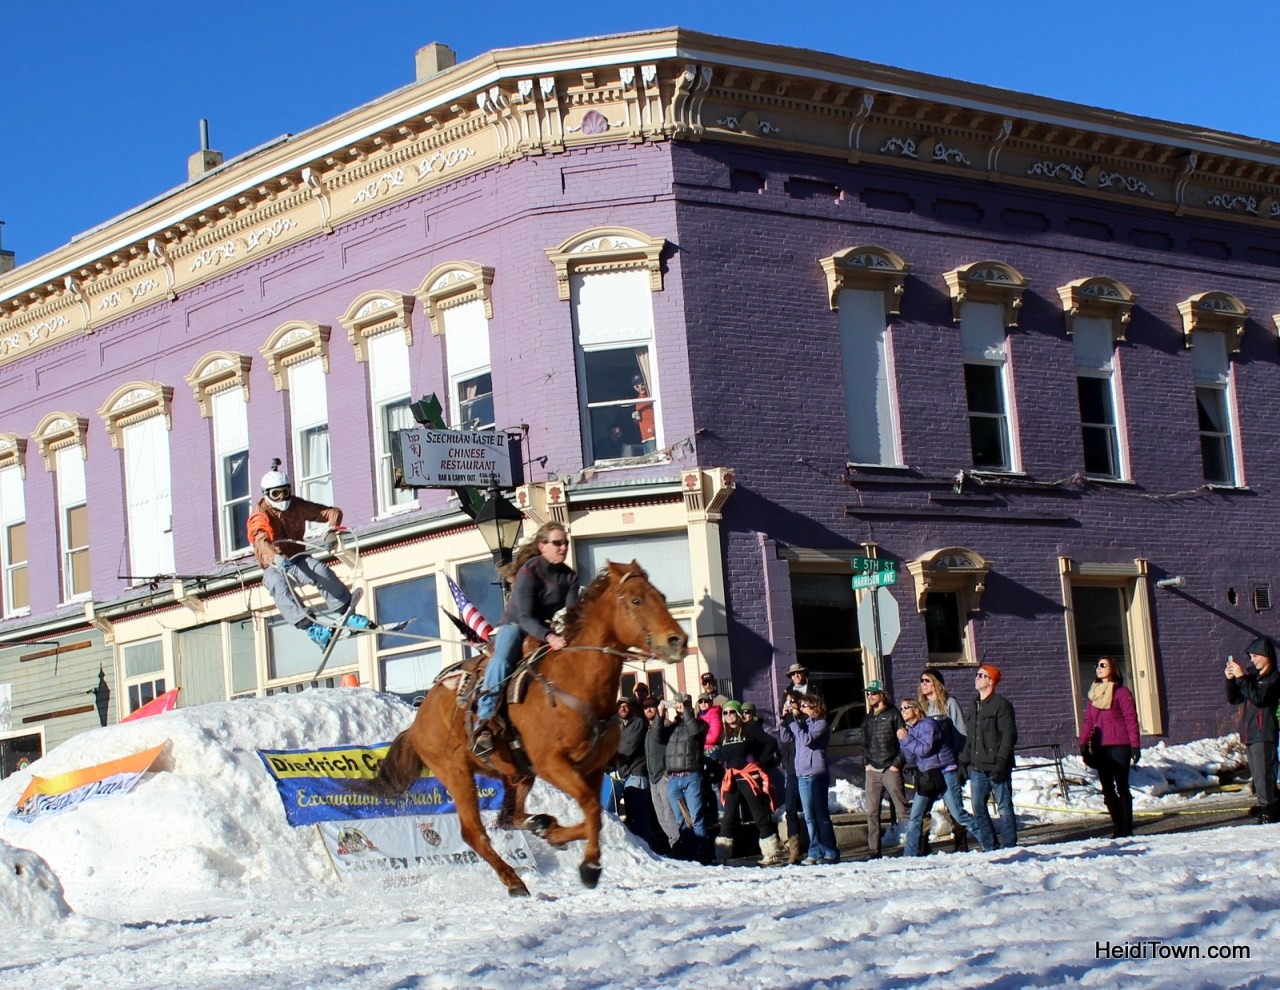 Skijoring Championships in Leadville, Colorado 2015. HeidiTown.com